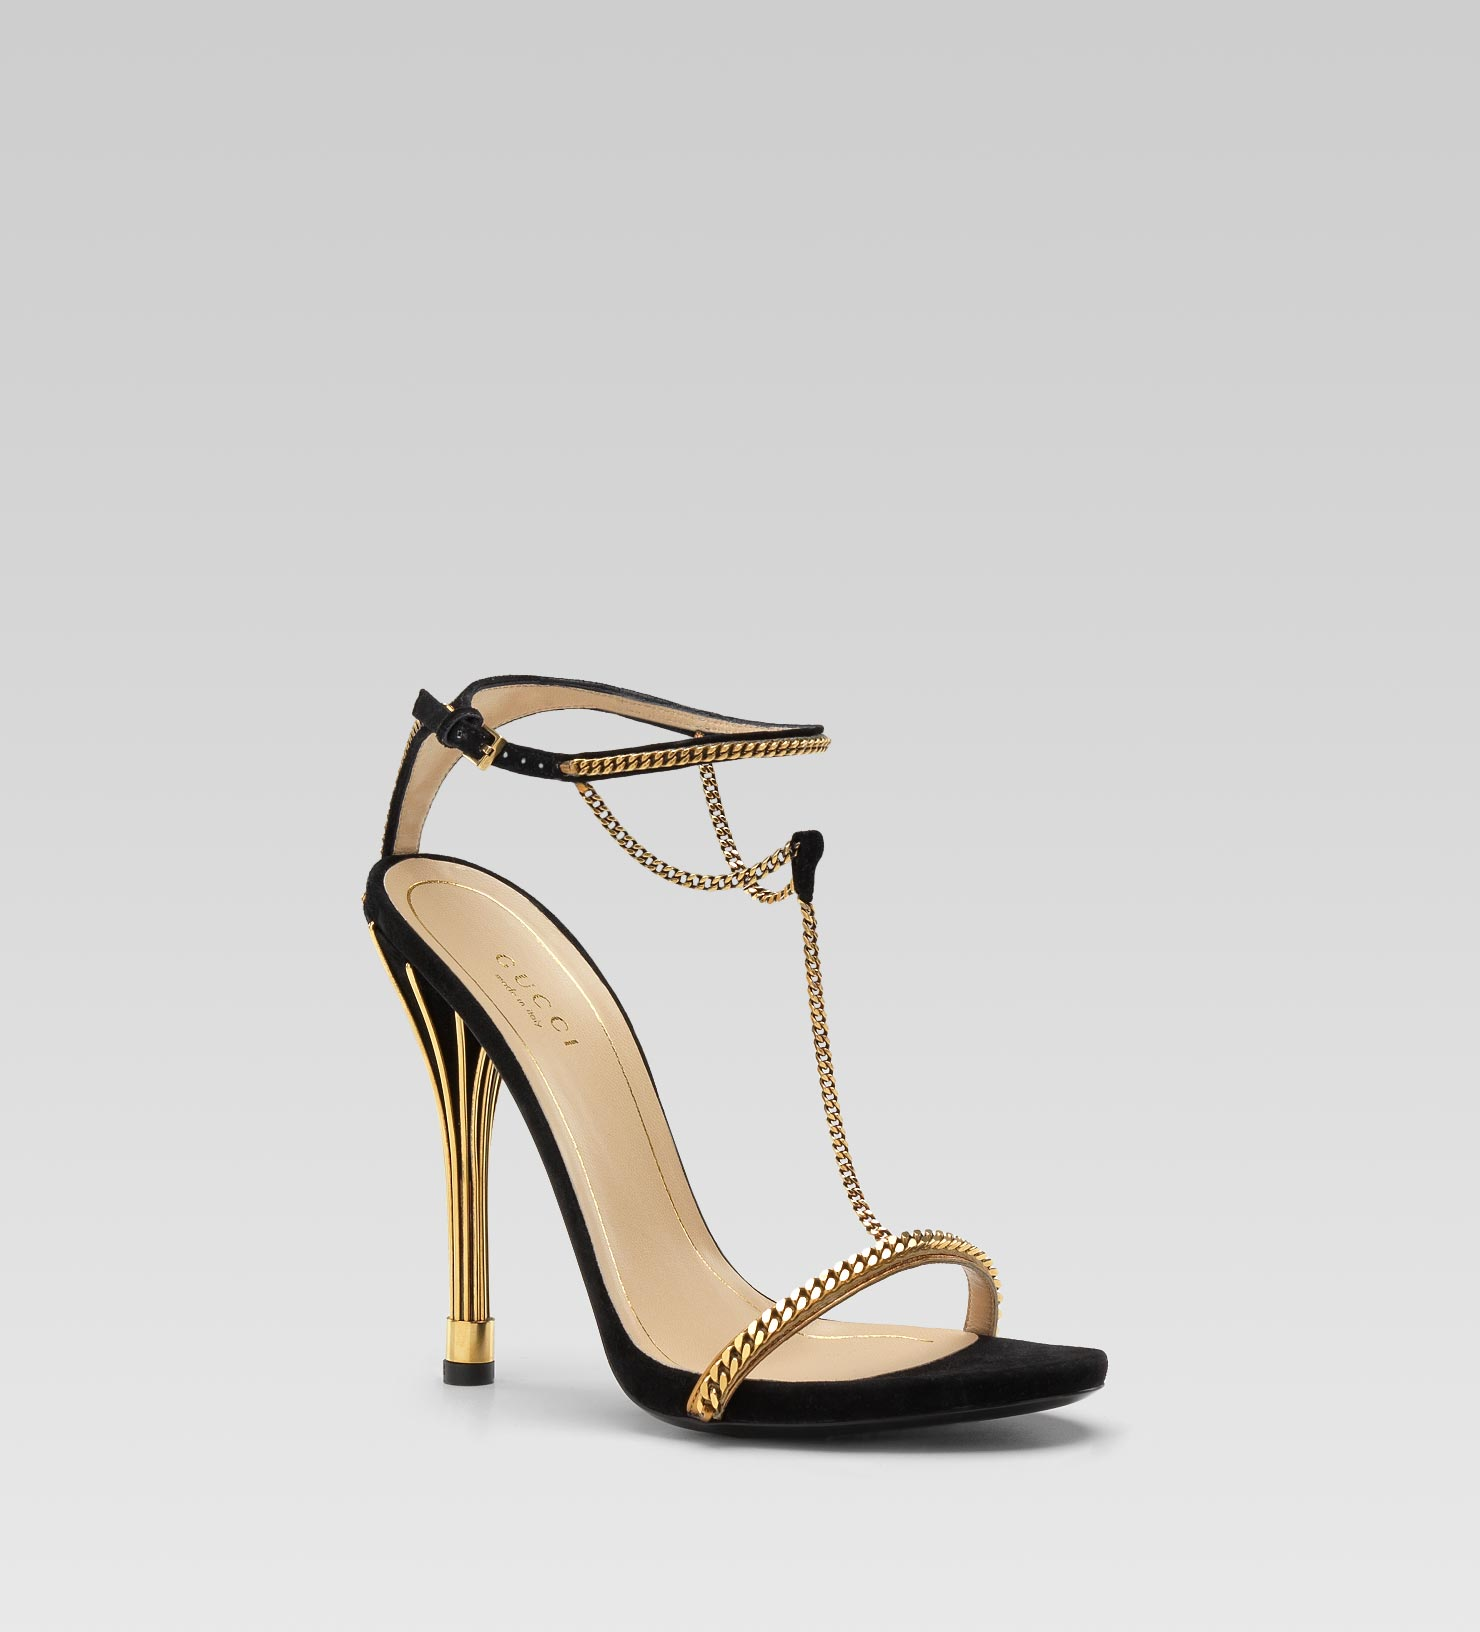 Gucci Shoes Gold Heel